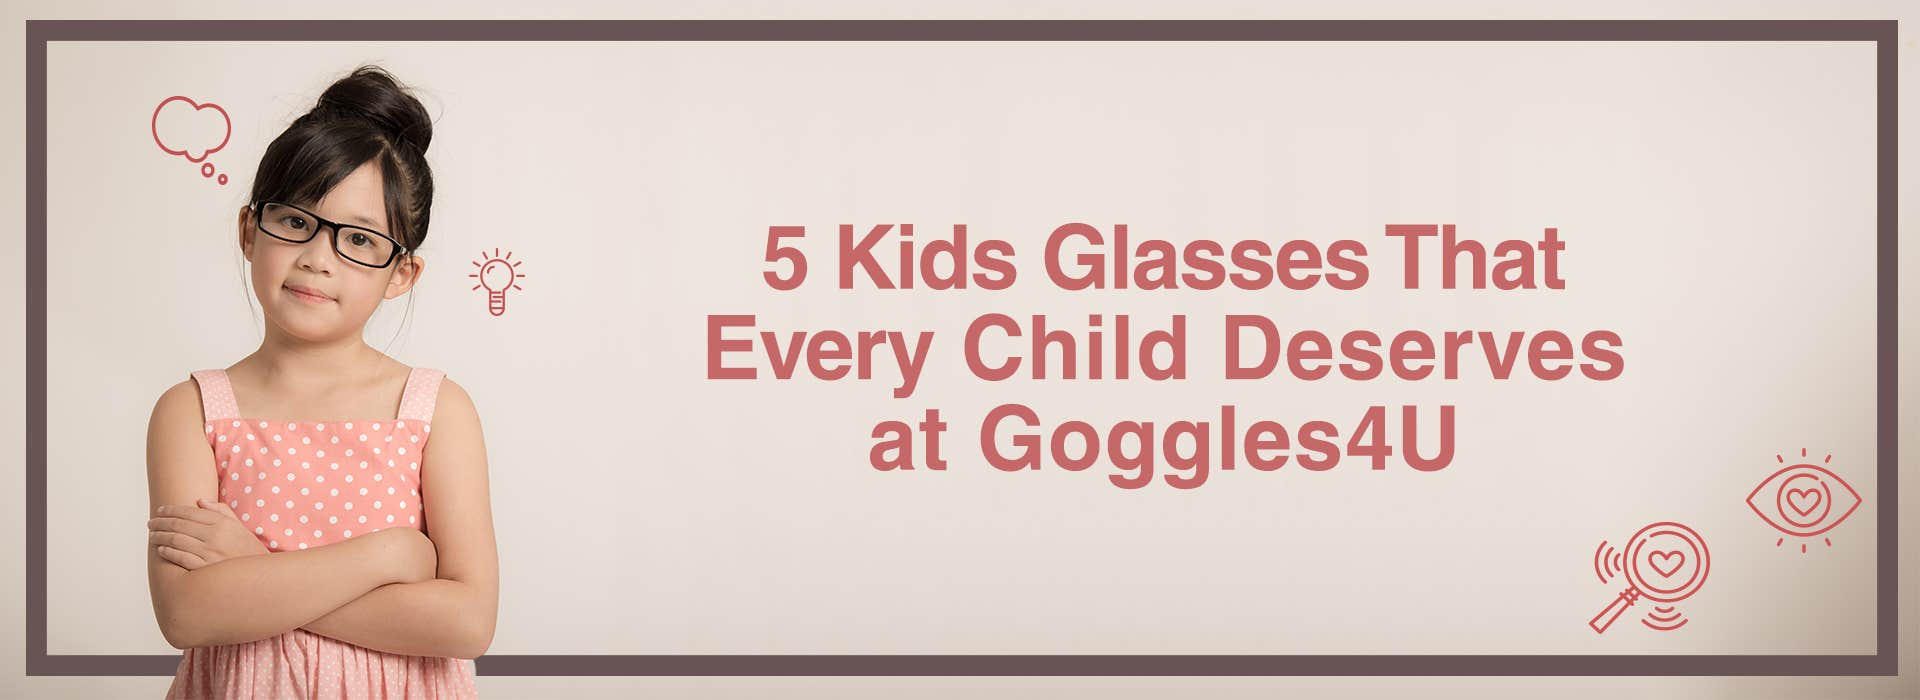 5 Kids Glasses That Every Child Deserves at Goggles4U